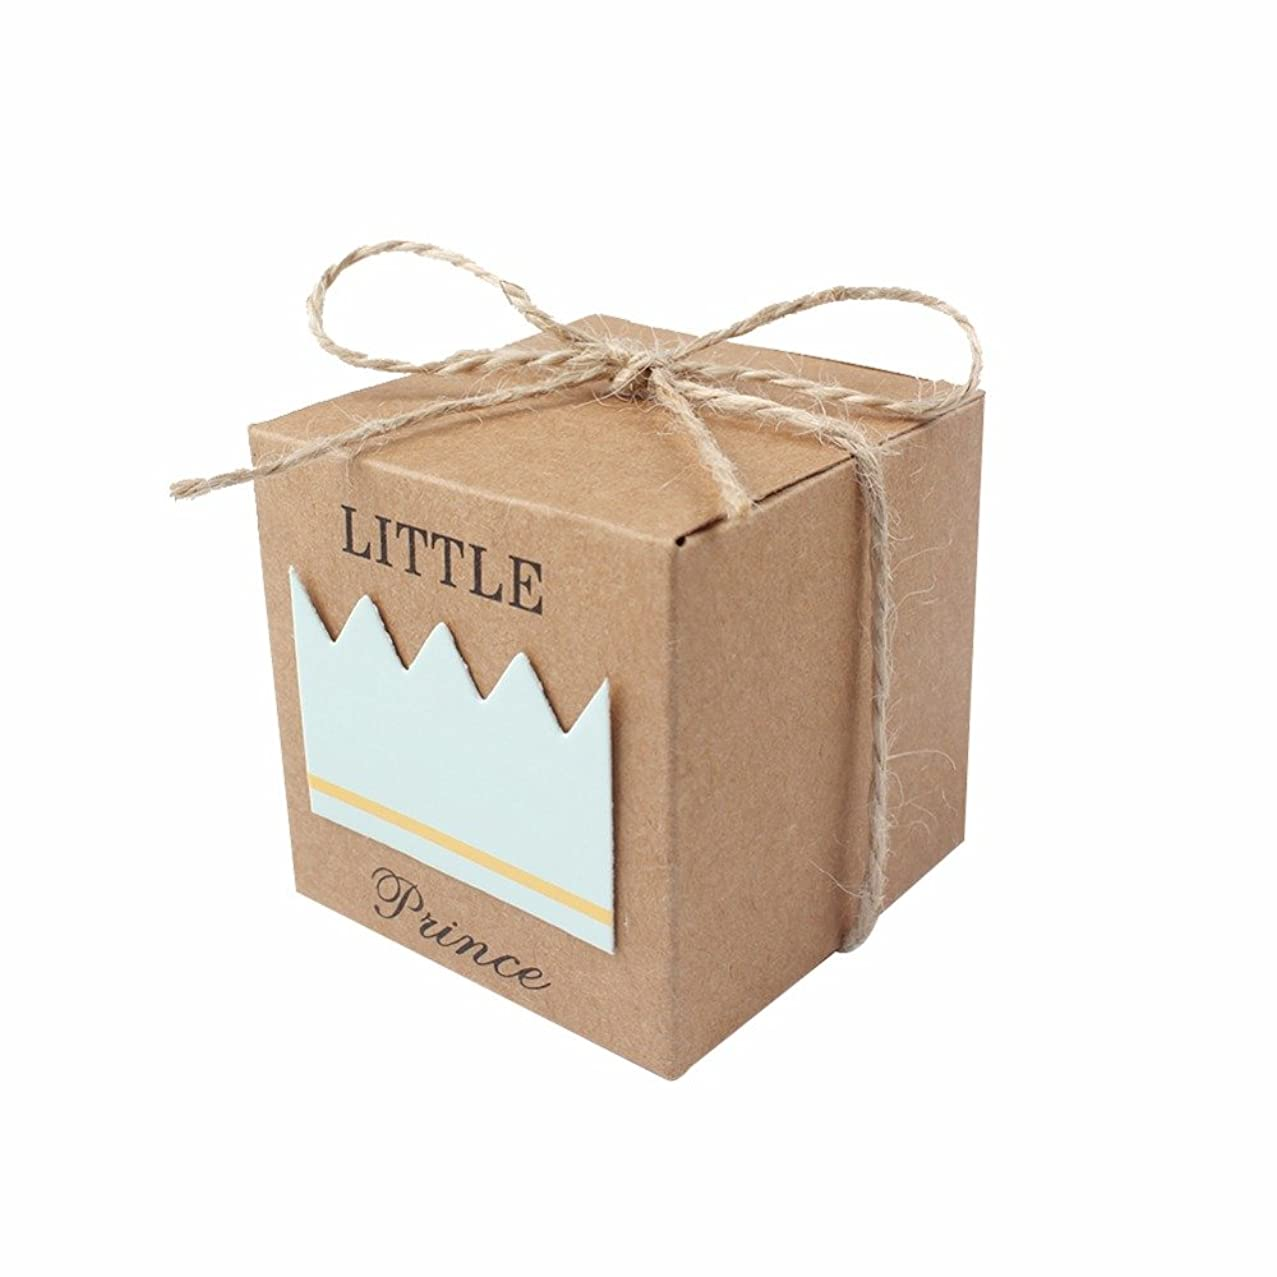 iMagitek 50 Pcs Baby Shower Favor Boxes + 50 Pcs Twine Bow for Little Prince, Candy Box Gift Bag for Baby Shower, Baby Boys Birthday Party